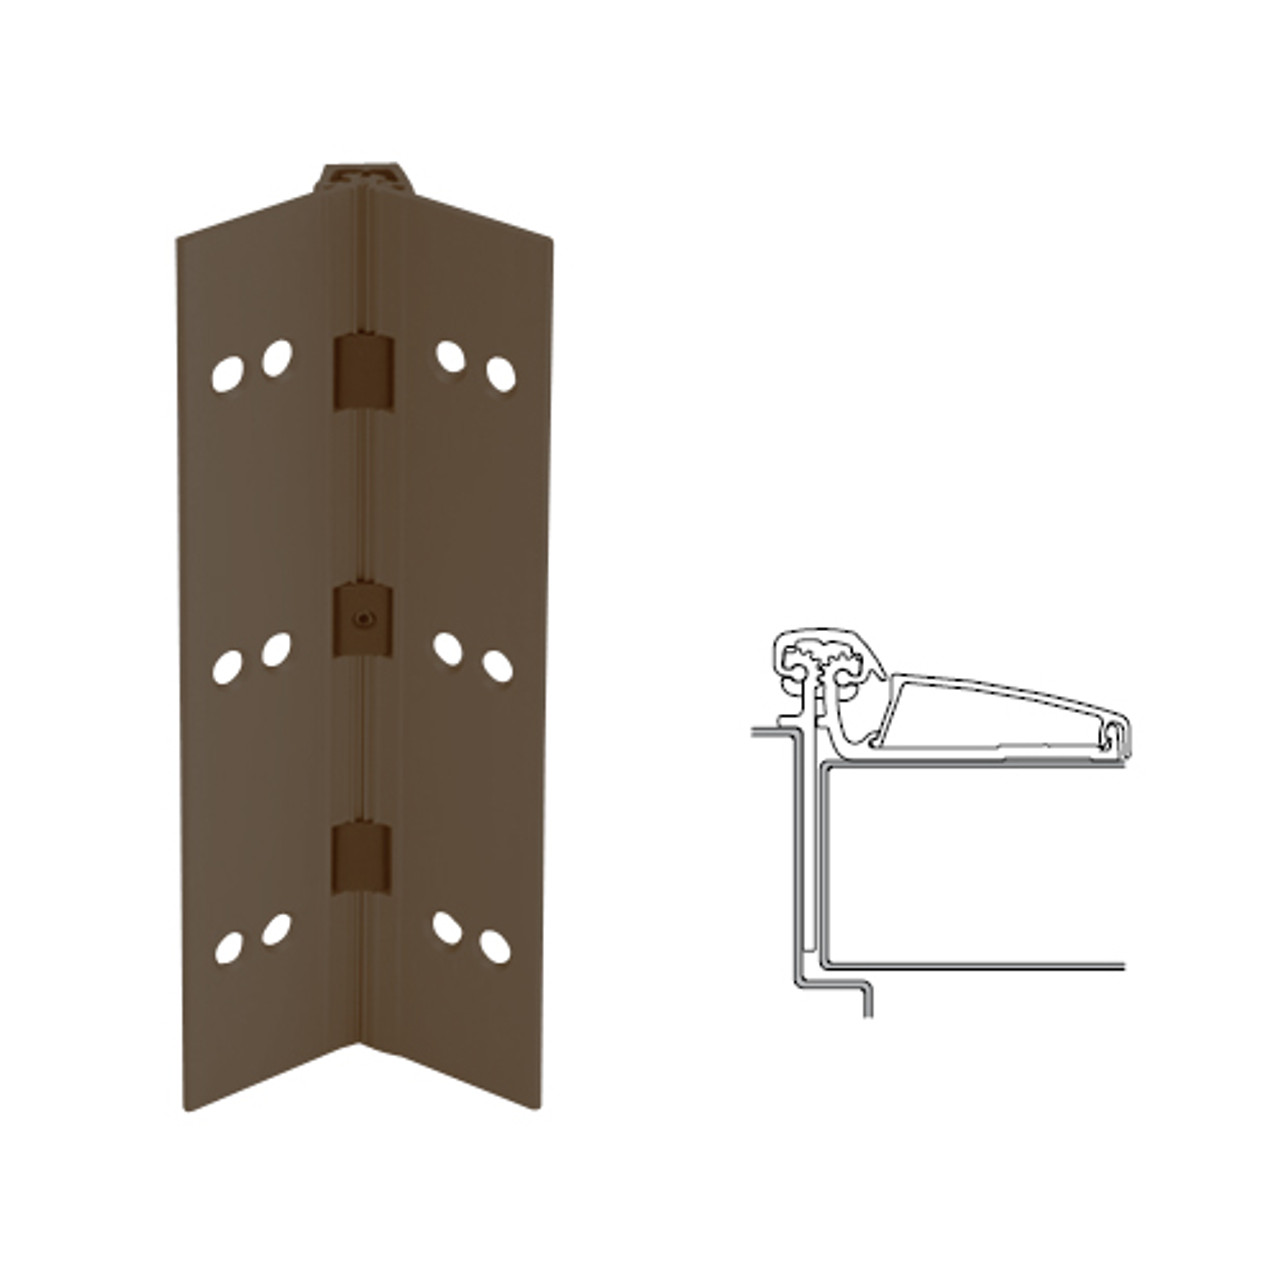 046XY-313AN-83-WD IVES Adjustable Half Surface Continuous Geared Hinges with Wood Screws in Dark Bronze Anodized